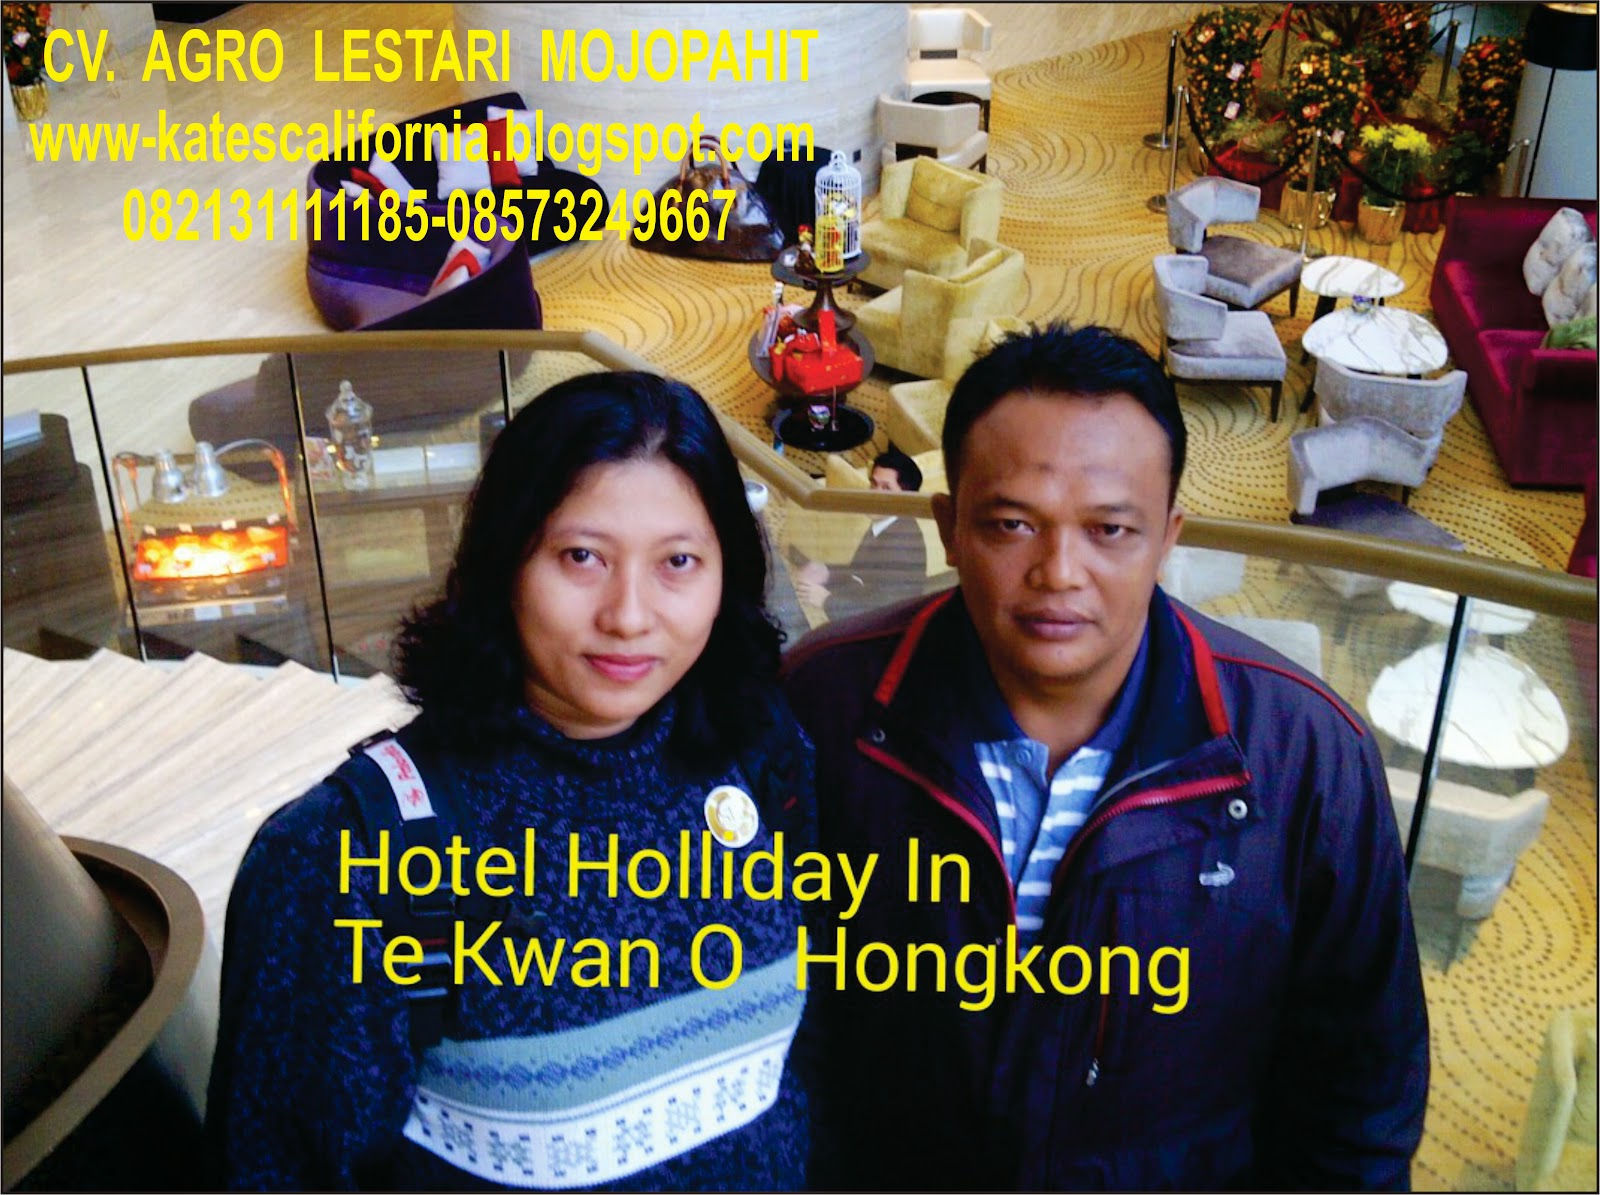 http://www.indonetwork.co.id/lestari_j4y4/group+111925/pintu-harmonika.htm